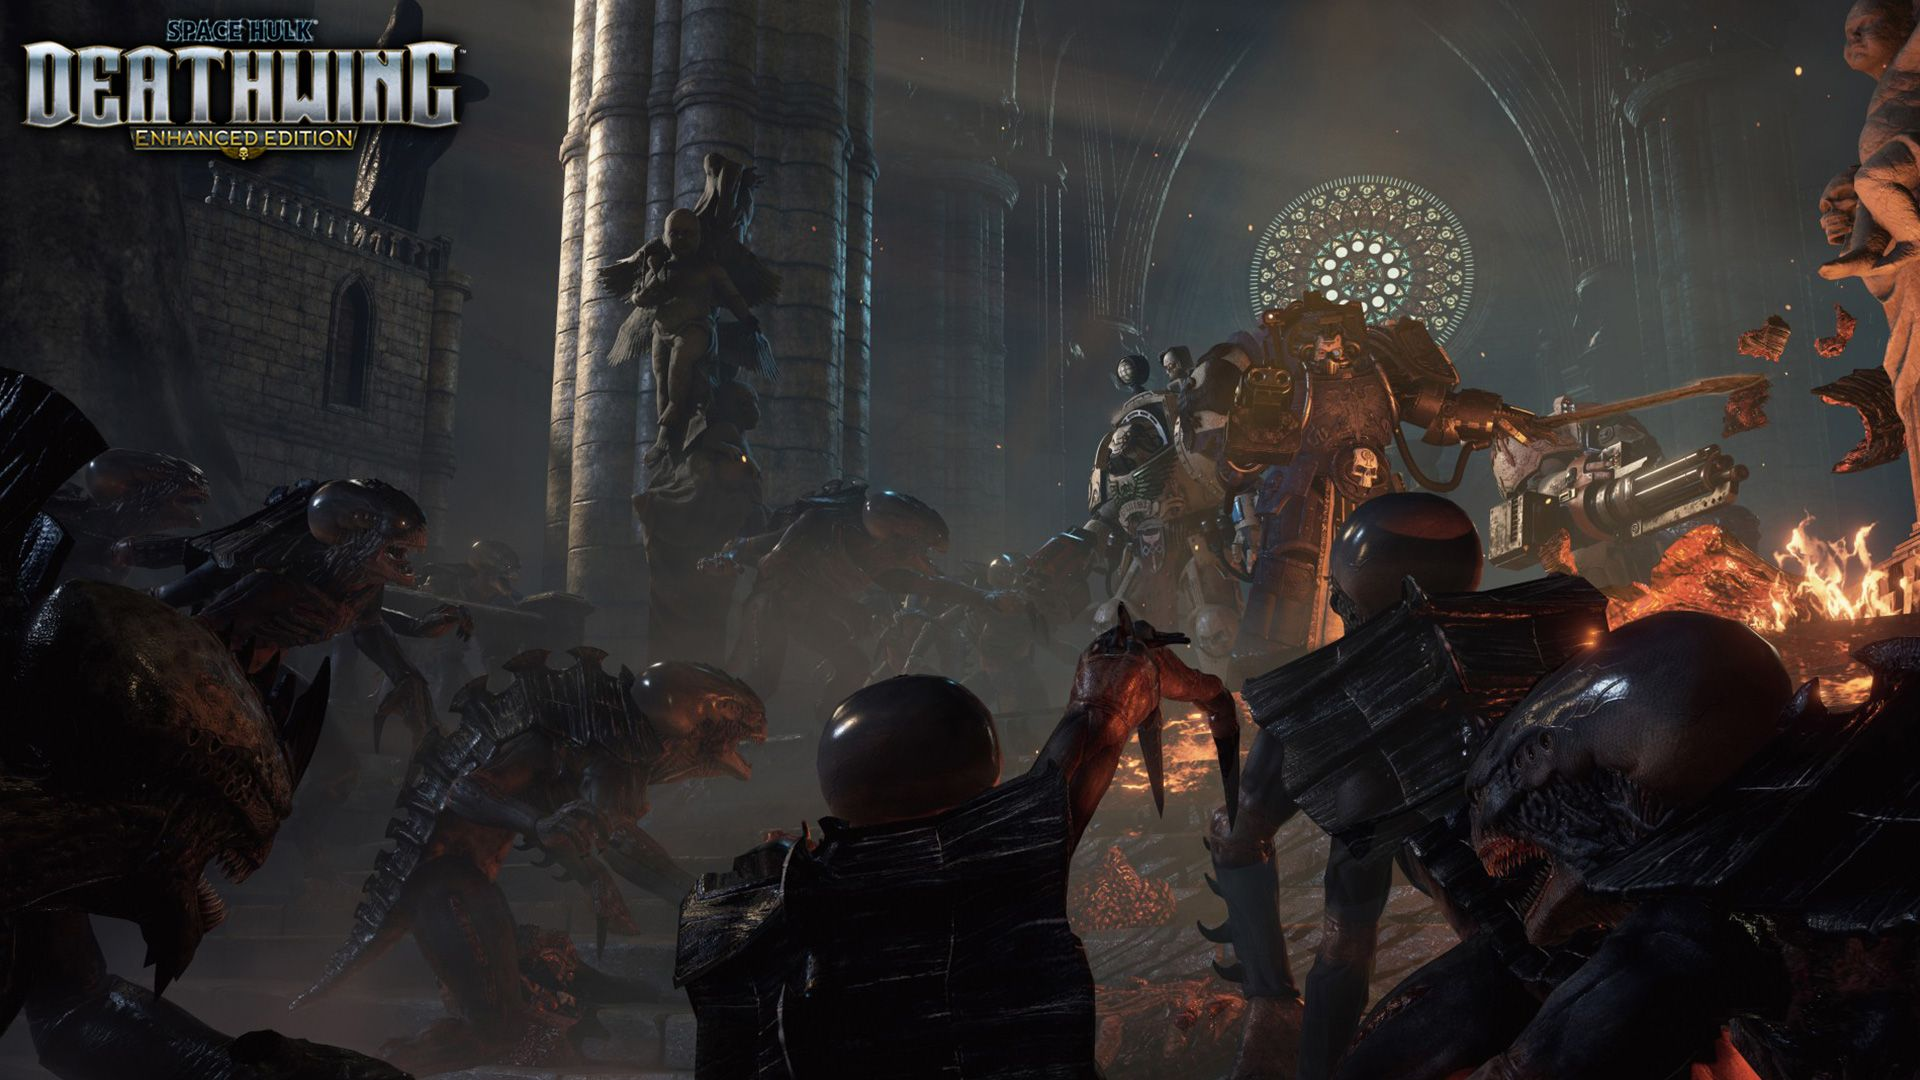 Space Hulk Deathwing C Enhanced Edition Affiliate Hulk Space Deathwing Edition Space Hulk Deathwing Floral Graphic Design 3d Background